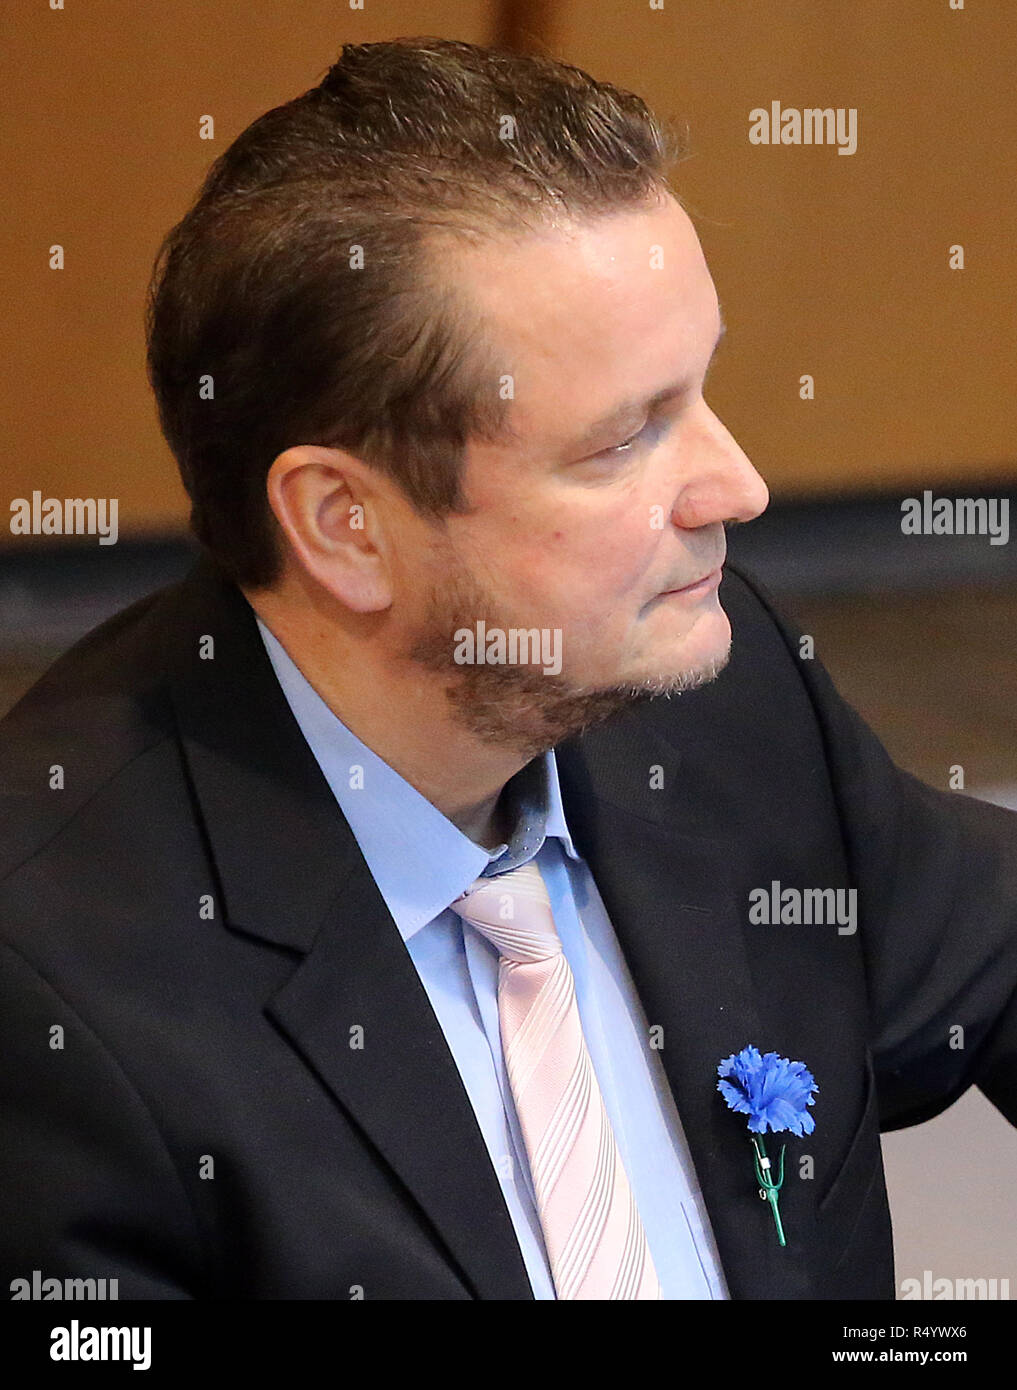 29 November 2018, Berlin: With a blue cornflower on his lapel, Andreas Wild (AfD), factionless, follows Question Time in the House of Representatives. The parliamentary president asked the deputy several times to remove the flower. From 1933 to 1938, the cornflower was a hallmark in Austria of the National Socialists who were banned at the time. Photo: Wolfgang Kumm/dpa - Stock Image